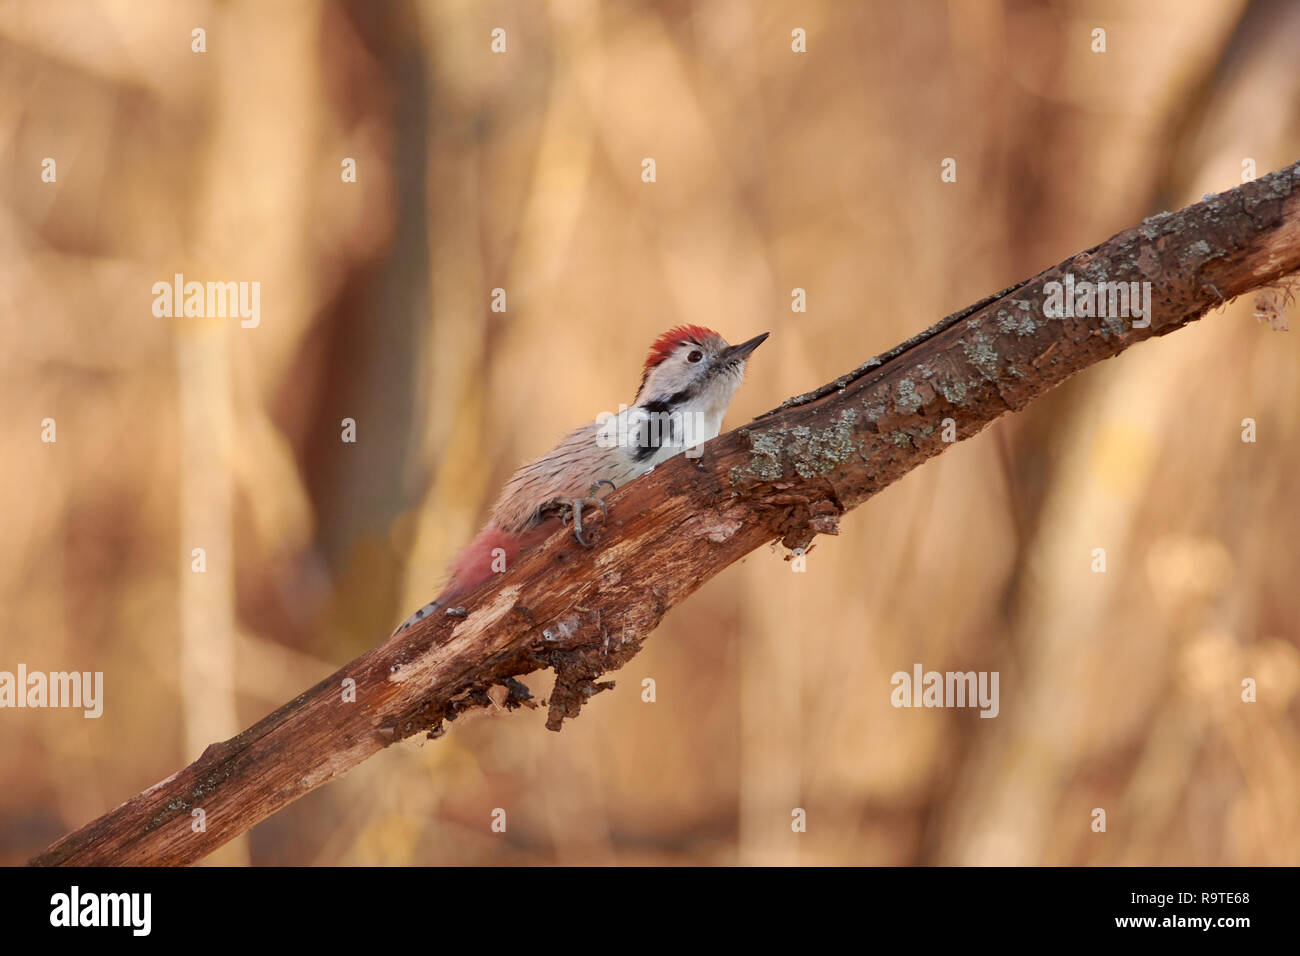 Middle spotted woodpecker (Dendrocoptes medius) hides behind a dry branch from a flying hawk. Stock Photo